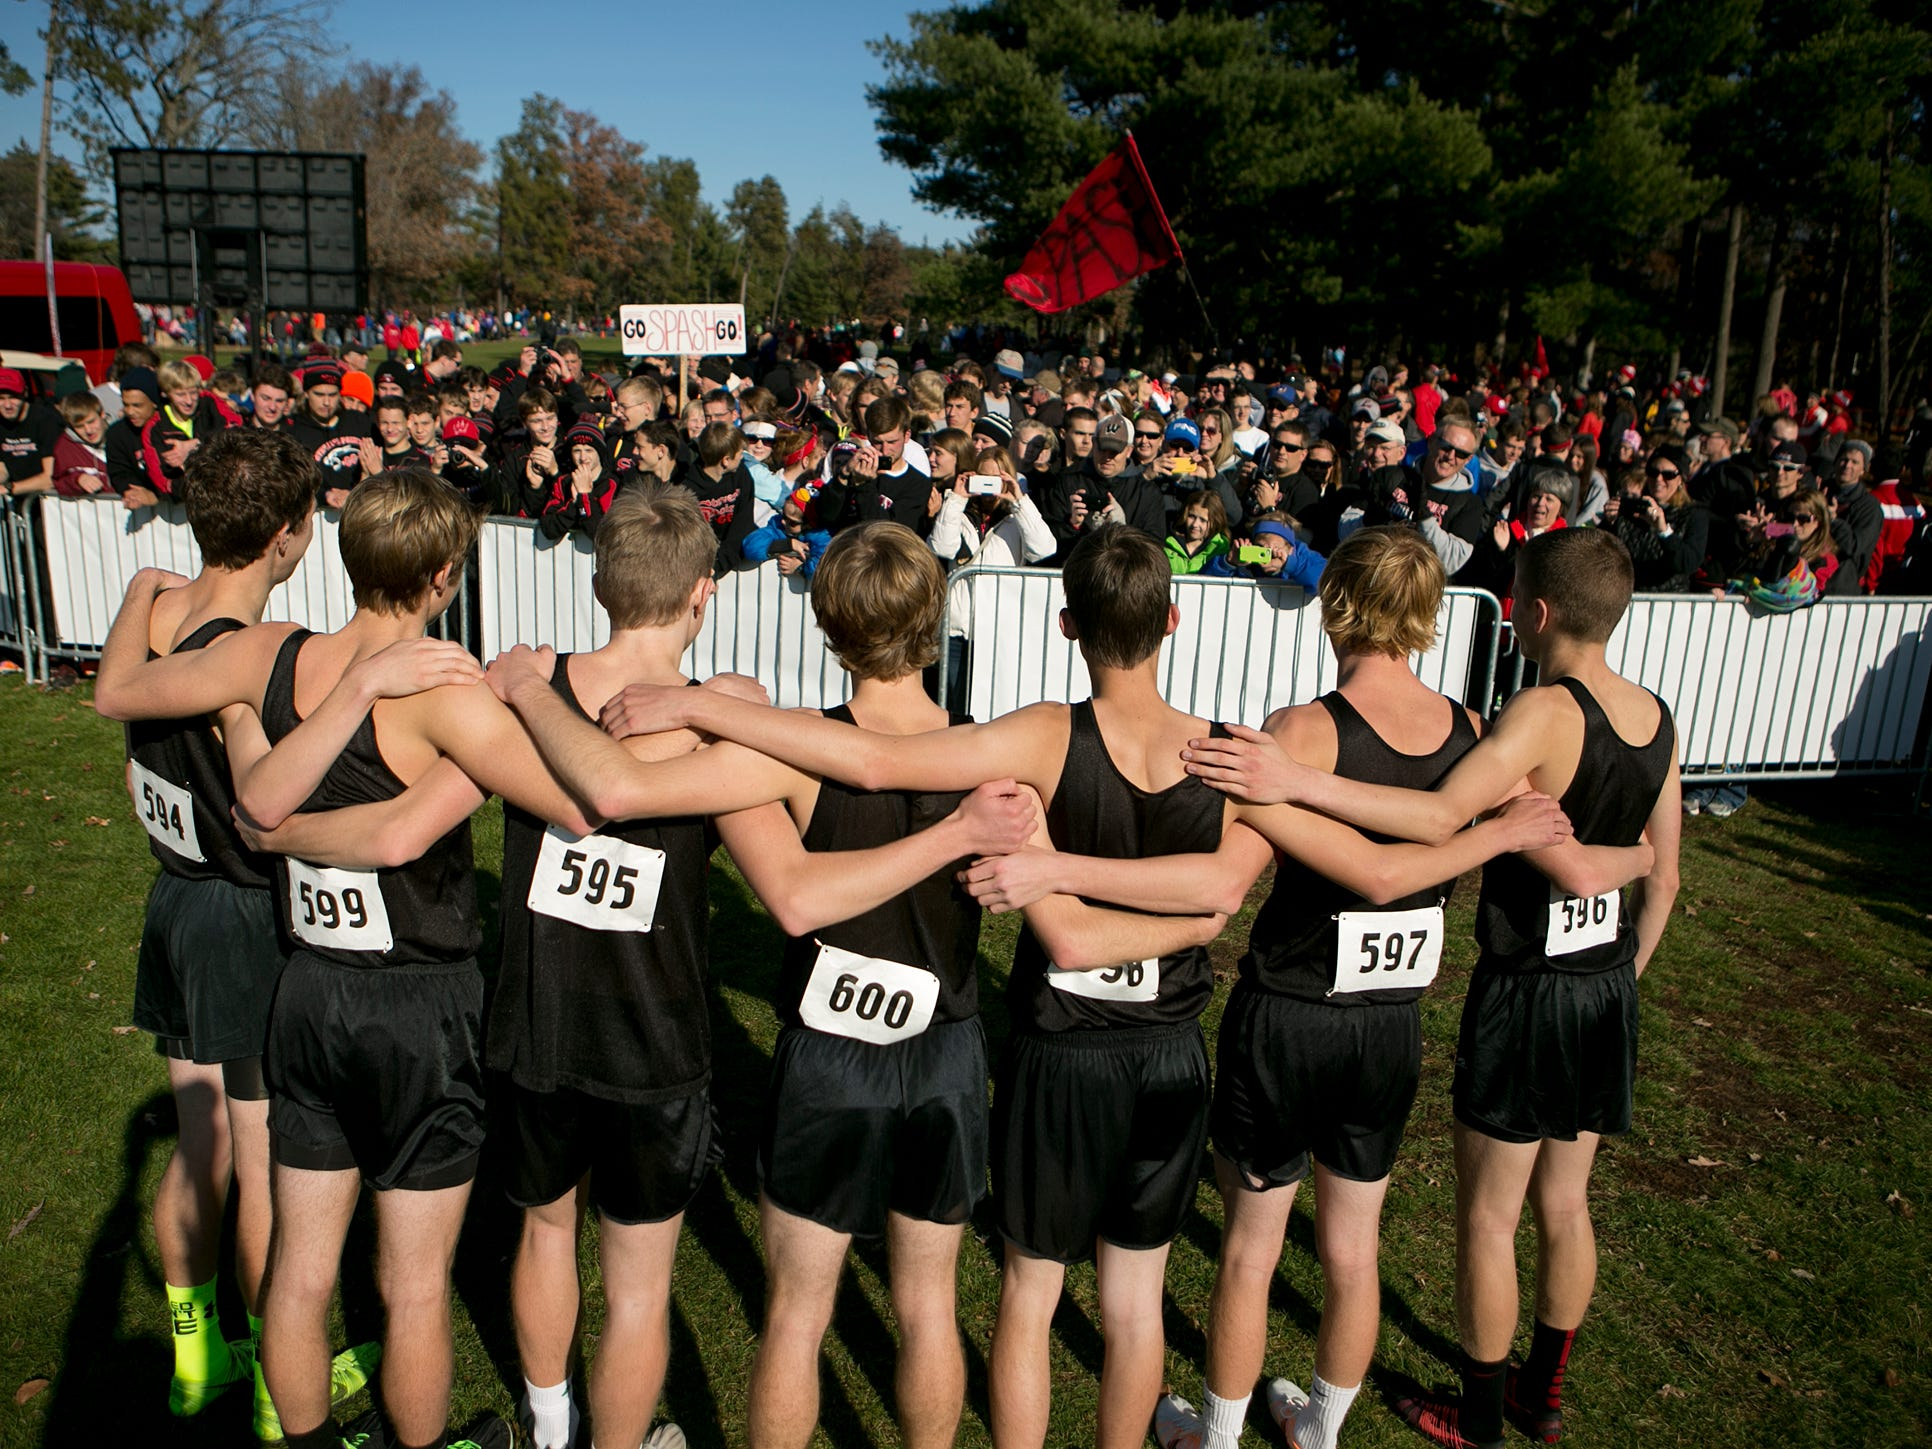 The Stevens Point Area High School boys cross country team poses for photos after coming in second during the Division 1 race during 2014 State Cross Country Championships at the Ridges Country Club in Wisconsin Rapids, Saturday, Nov. 1, 2014.